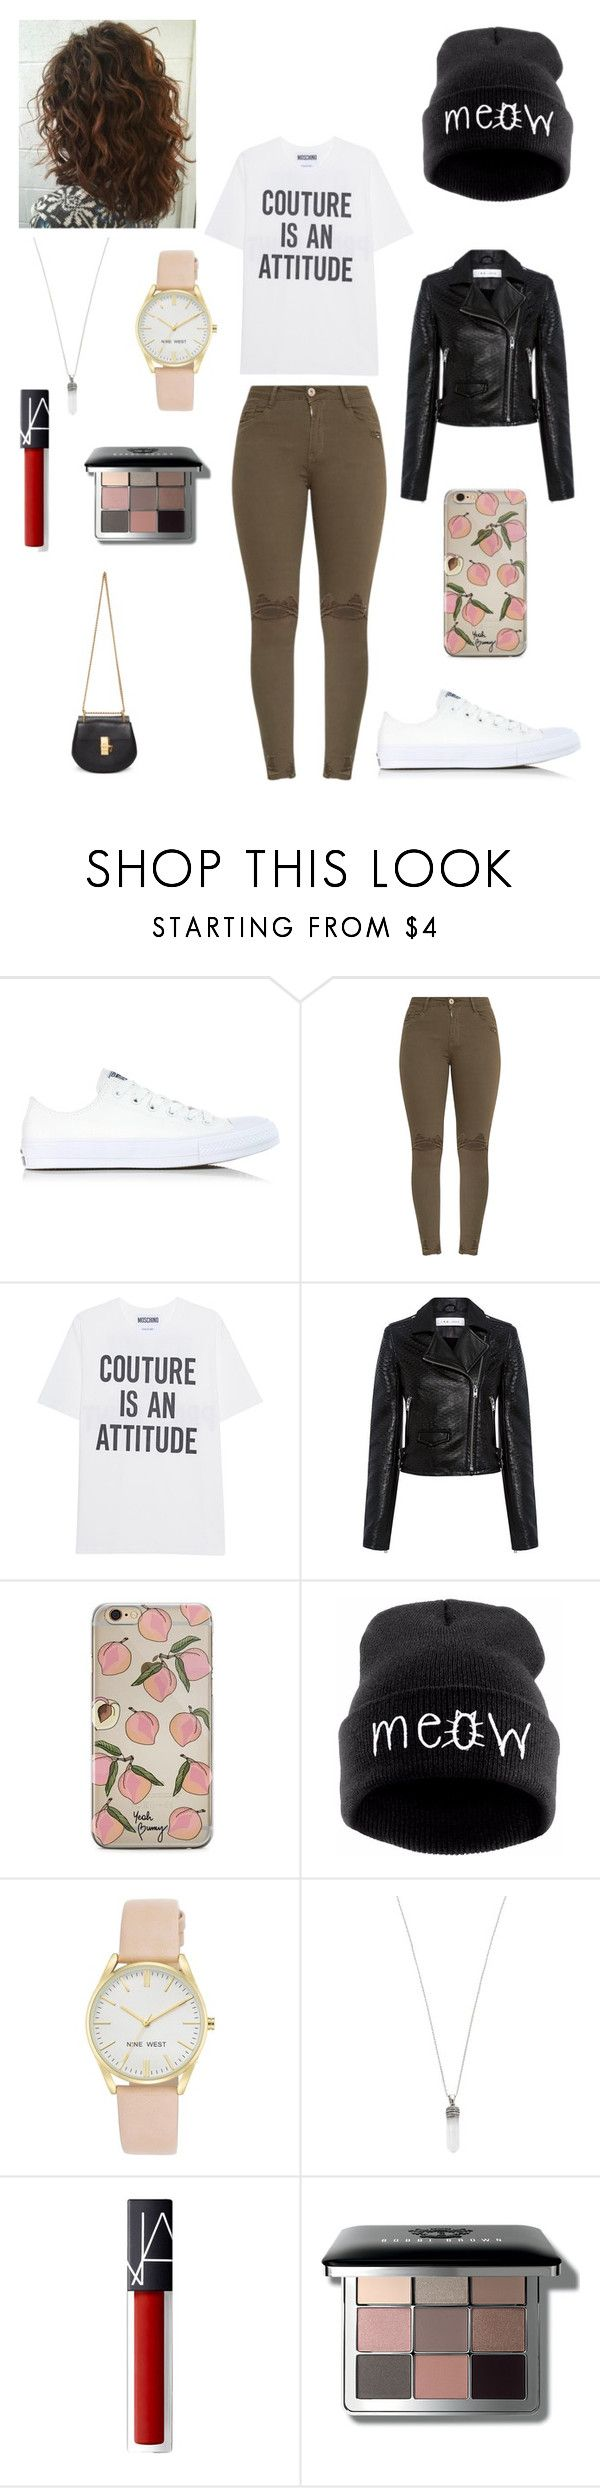 """""""Sans titre #2346"""" by amandine-collet ❤ liked on Polyvore featuring Converse, Moschino, IRO, Nine West, Marc Jacobs, Bobbi Brown Cosmetics and Chloé"""